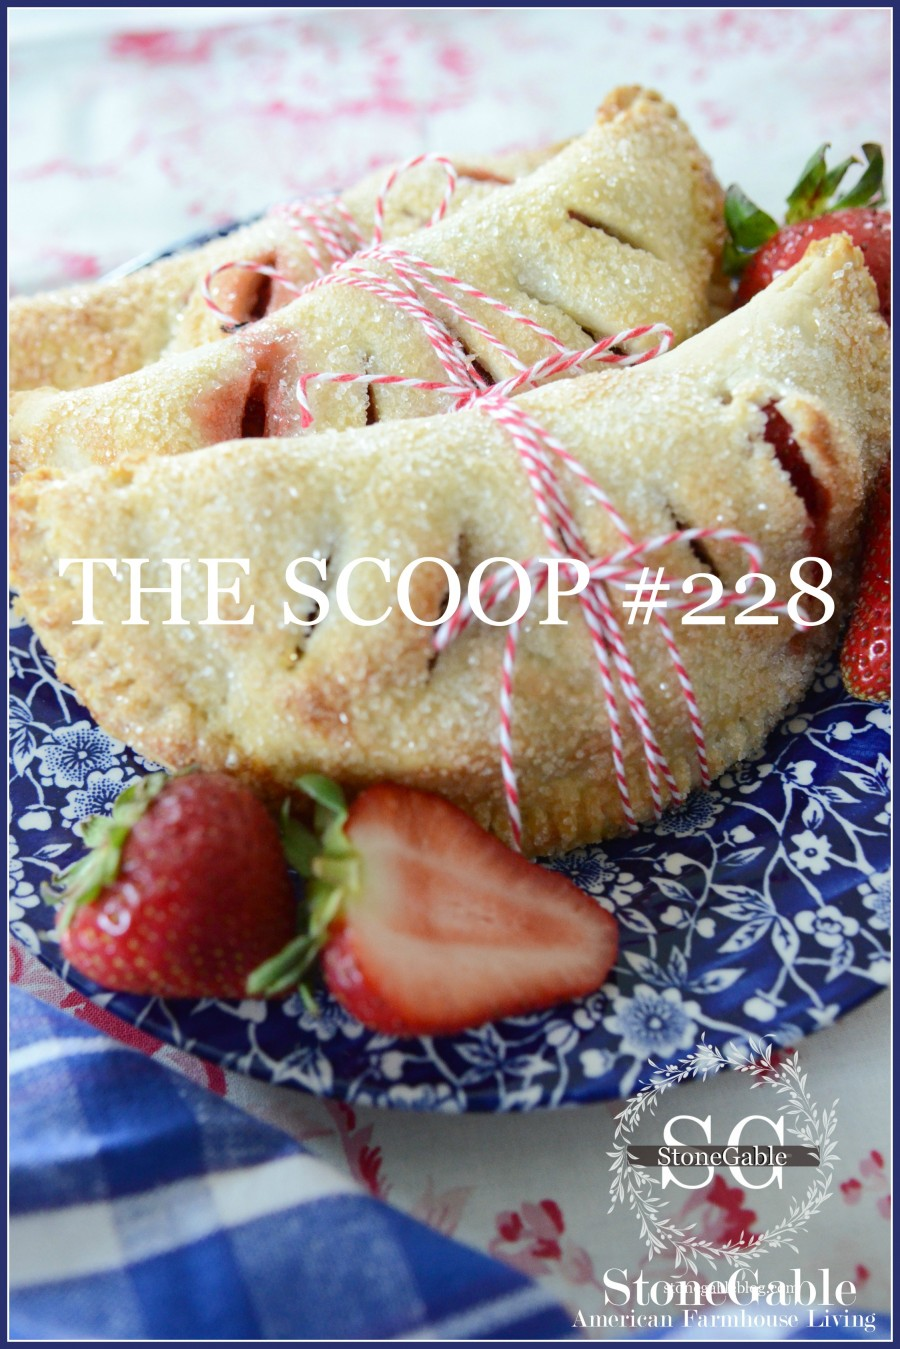 THE SCOOP #228- HUNDREDS OF THE BEST HOME AND GARDEN BLOGS